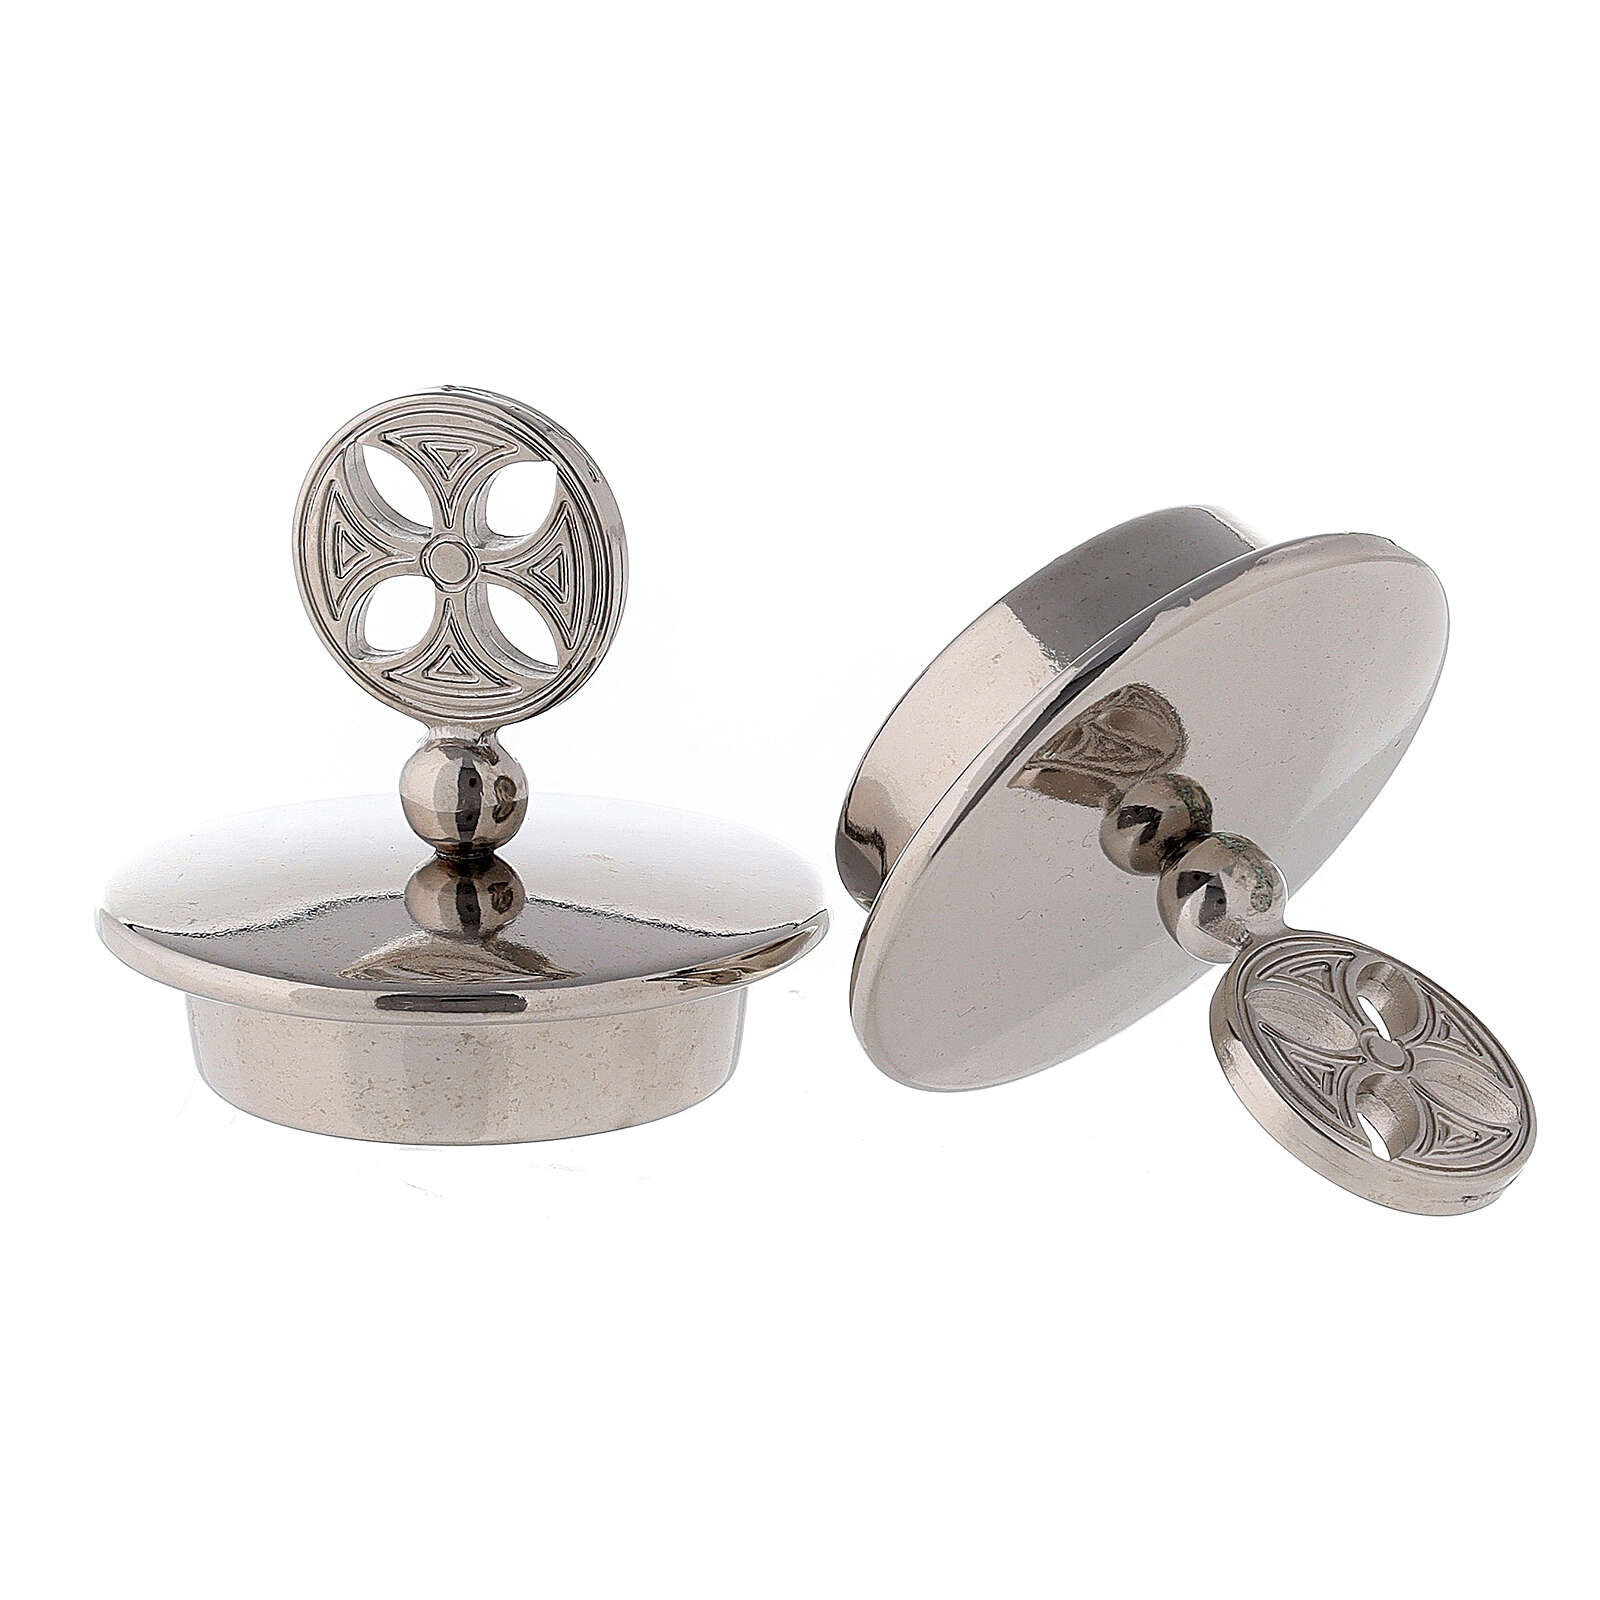 Silver-plated brass lids for Bologna cruets 4